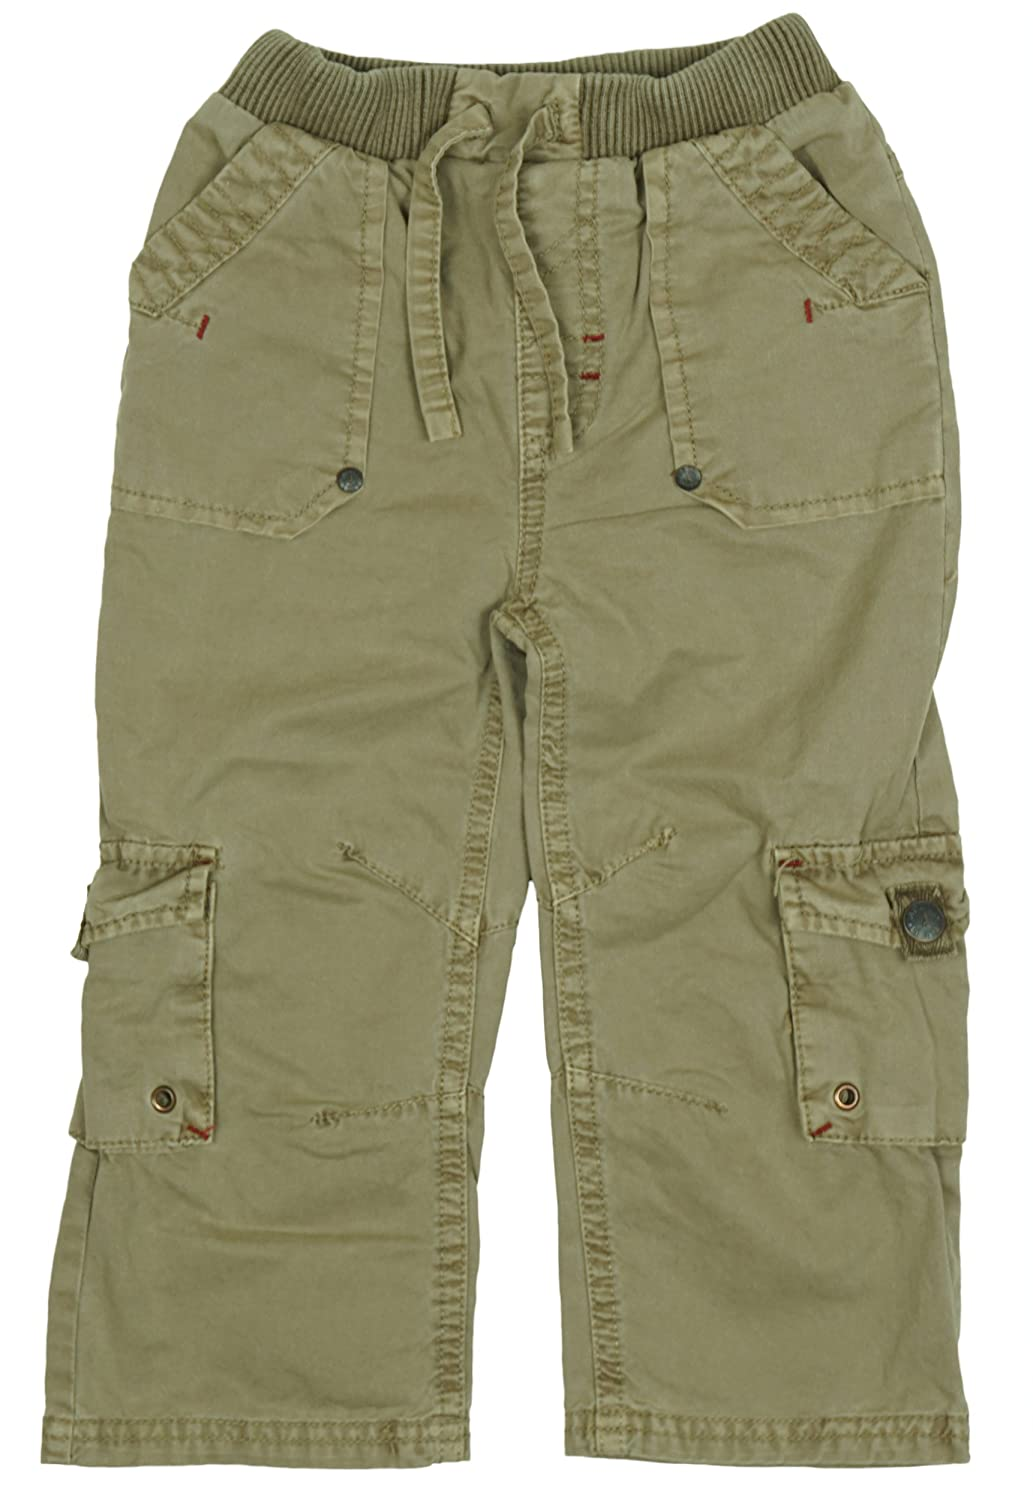 Girls Baby Toddler Chainstore Khaki Combat Pocket Trousers Sizes From Newborn To 24 Months